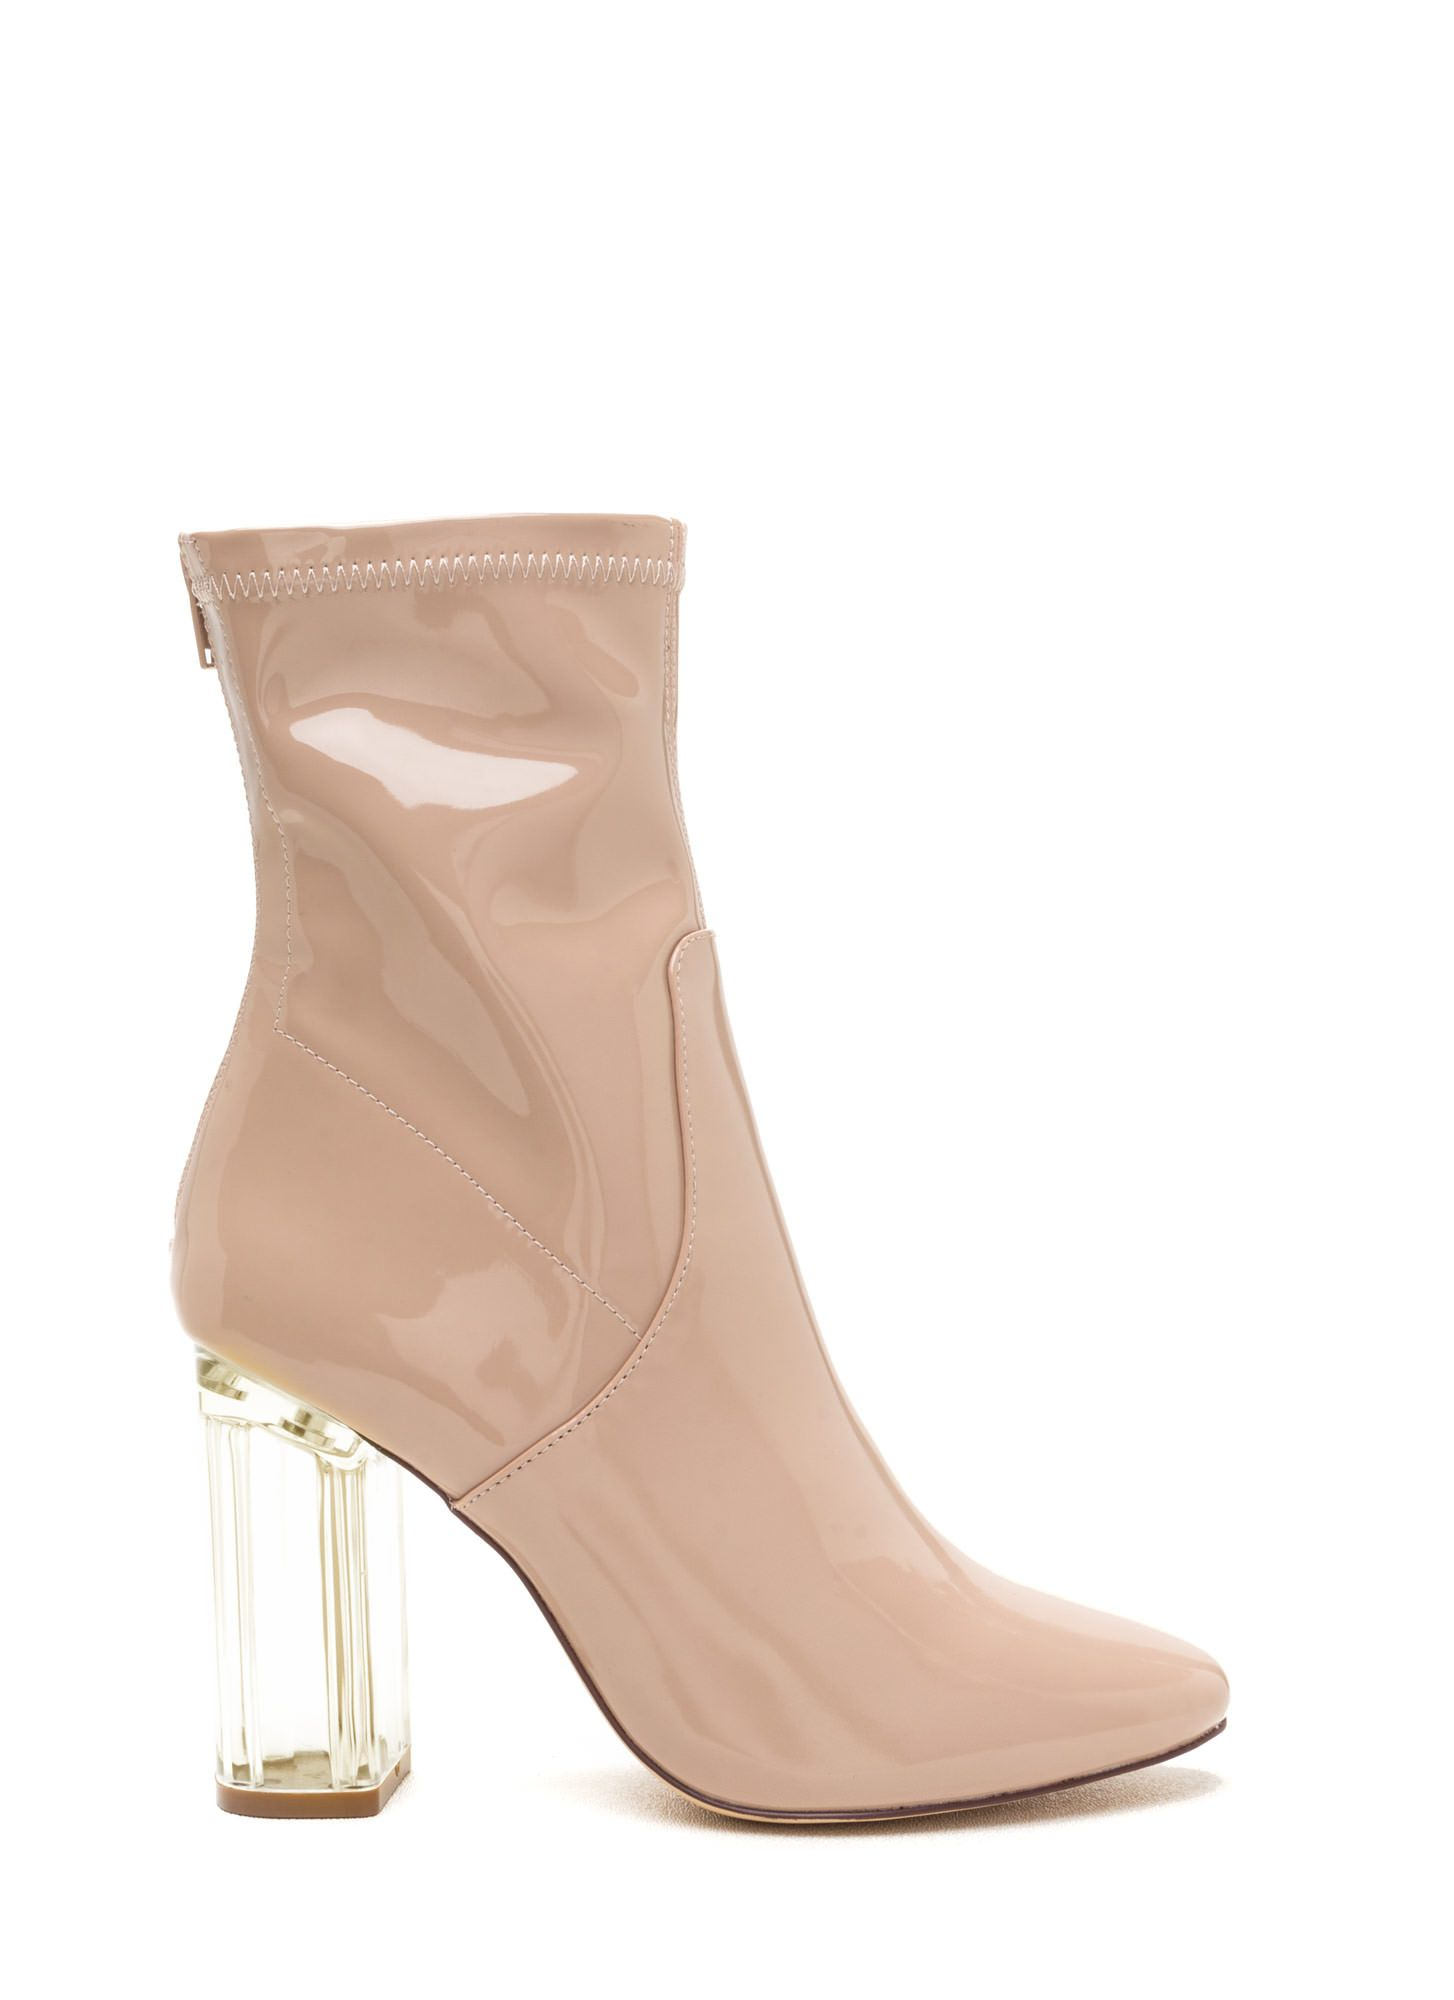 9feacca28 Clearly Chic Chunky Faux Patent Booties NUDE | shopping my style ...